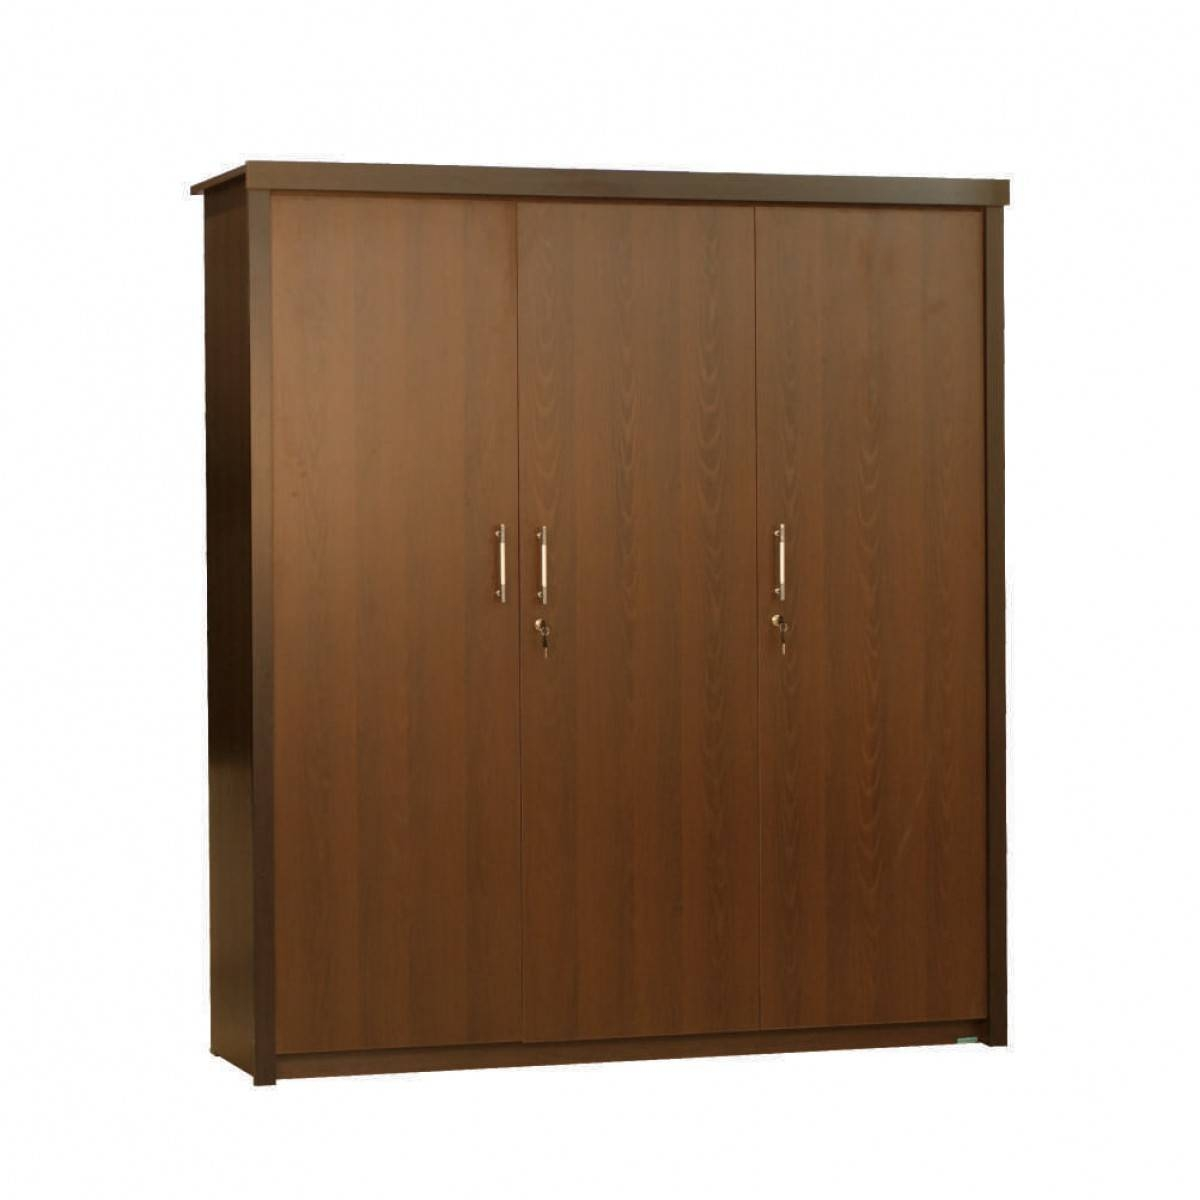 Ornate 3 Door Wardrobe | Damro with regard to Ornate Wardrobes (Image 11 of 15)